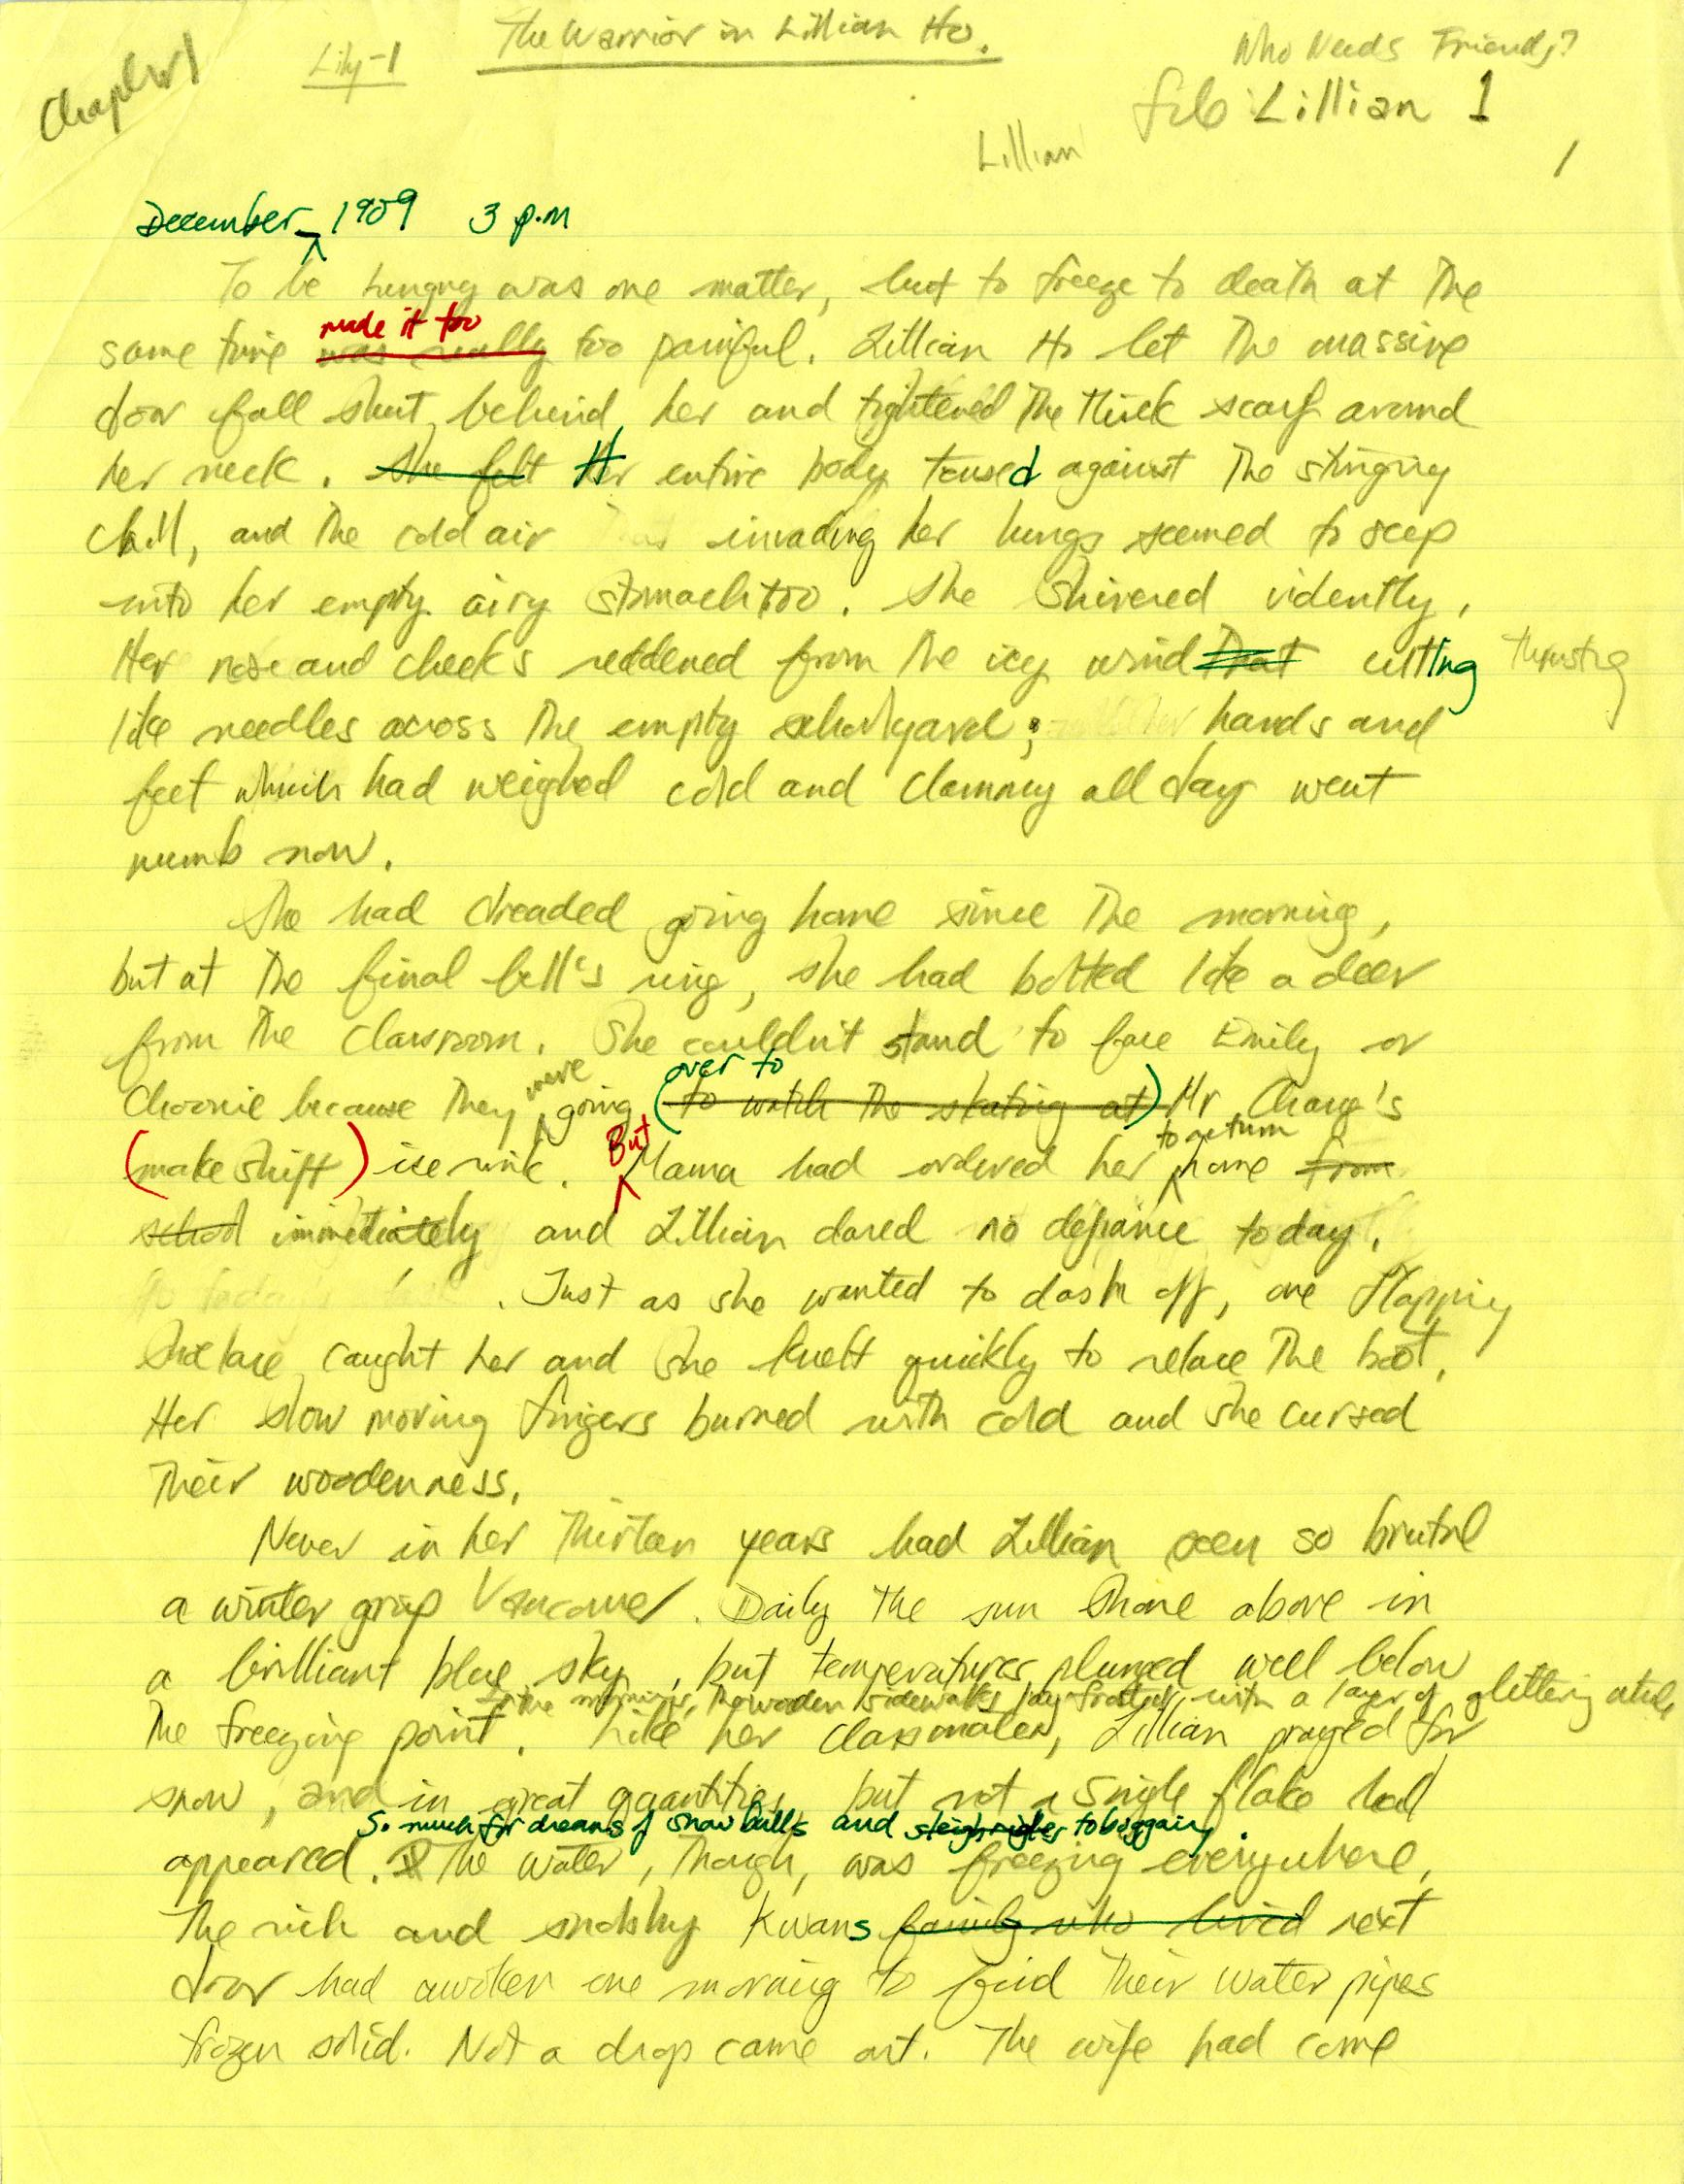 The first page of an early handwritten draft of Chapter 1 of The Curses of Third Uncle. This draft was likely written in 1984.